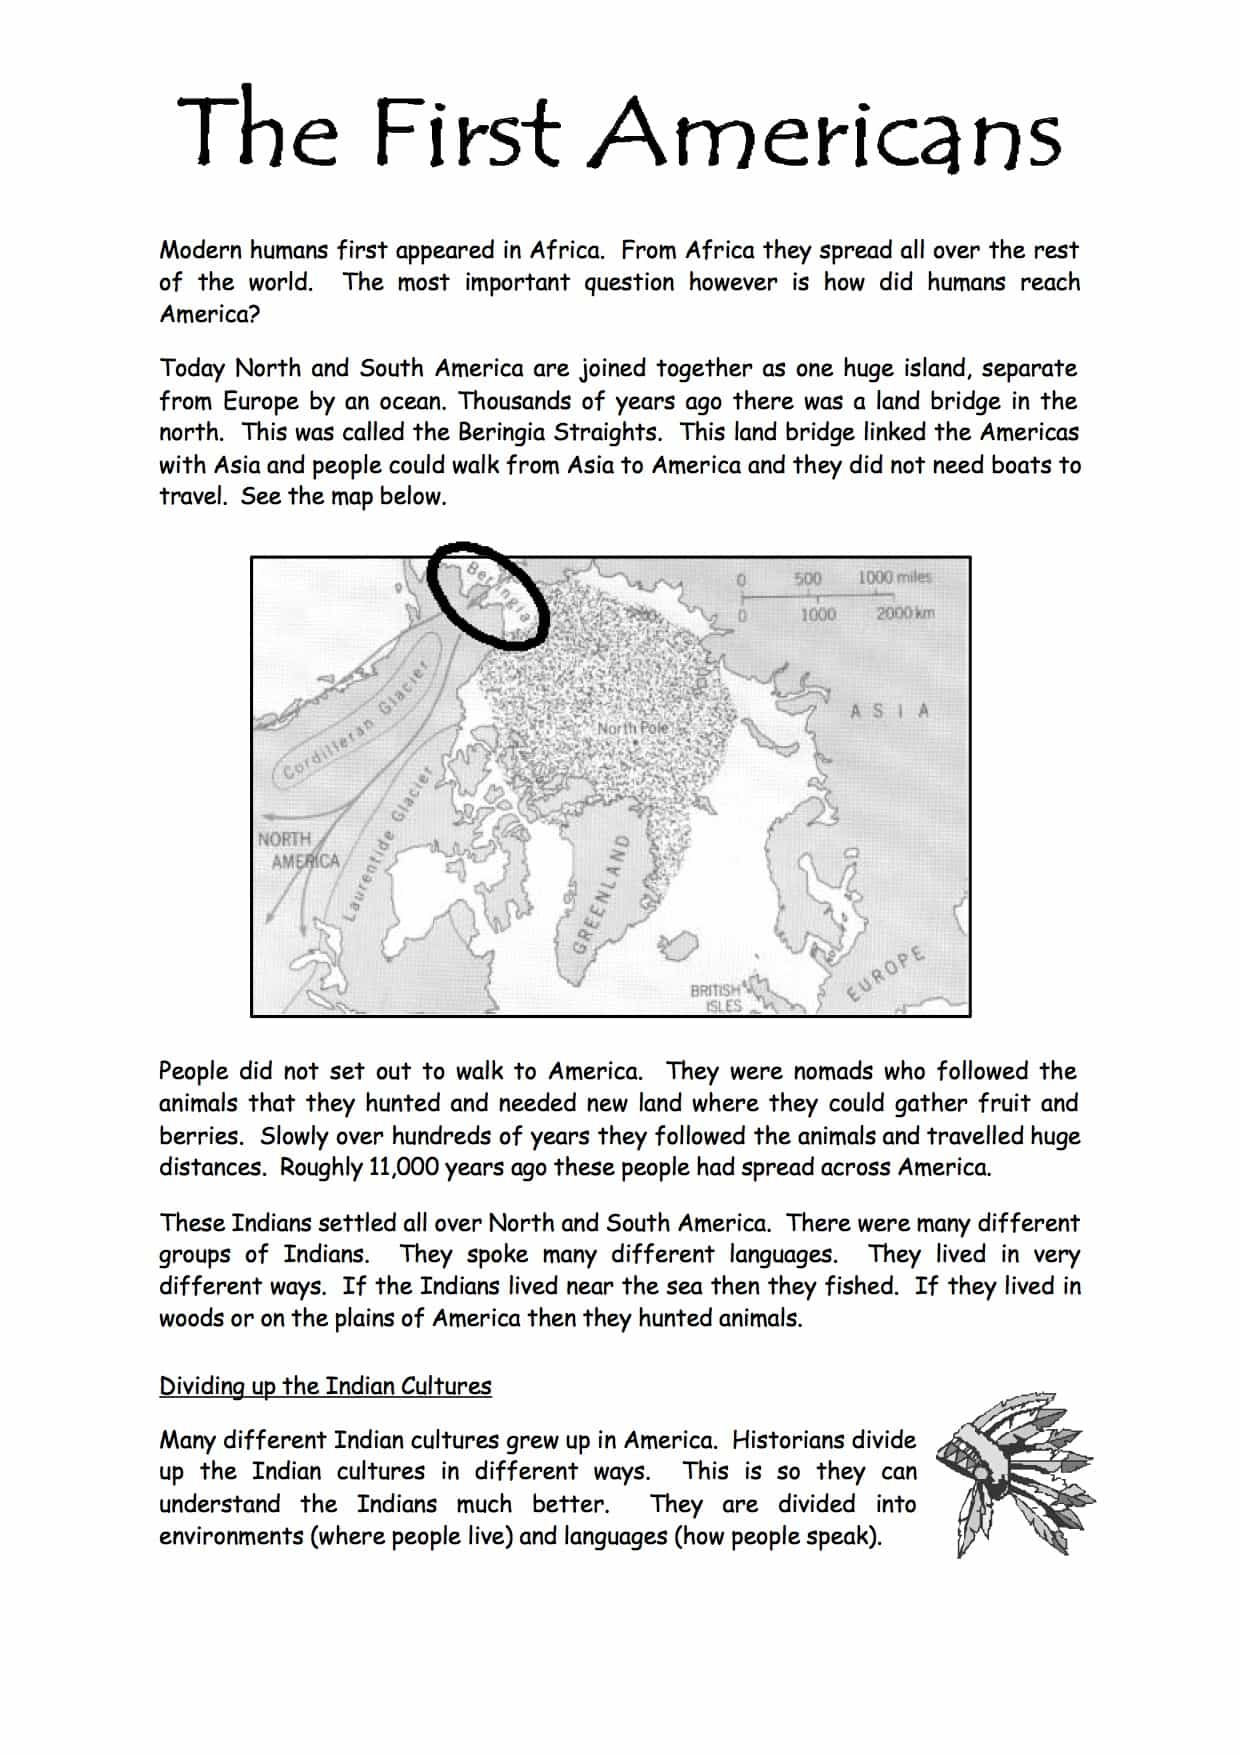 The First Americans Facts & Information Worksheet - Year 8/9